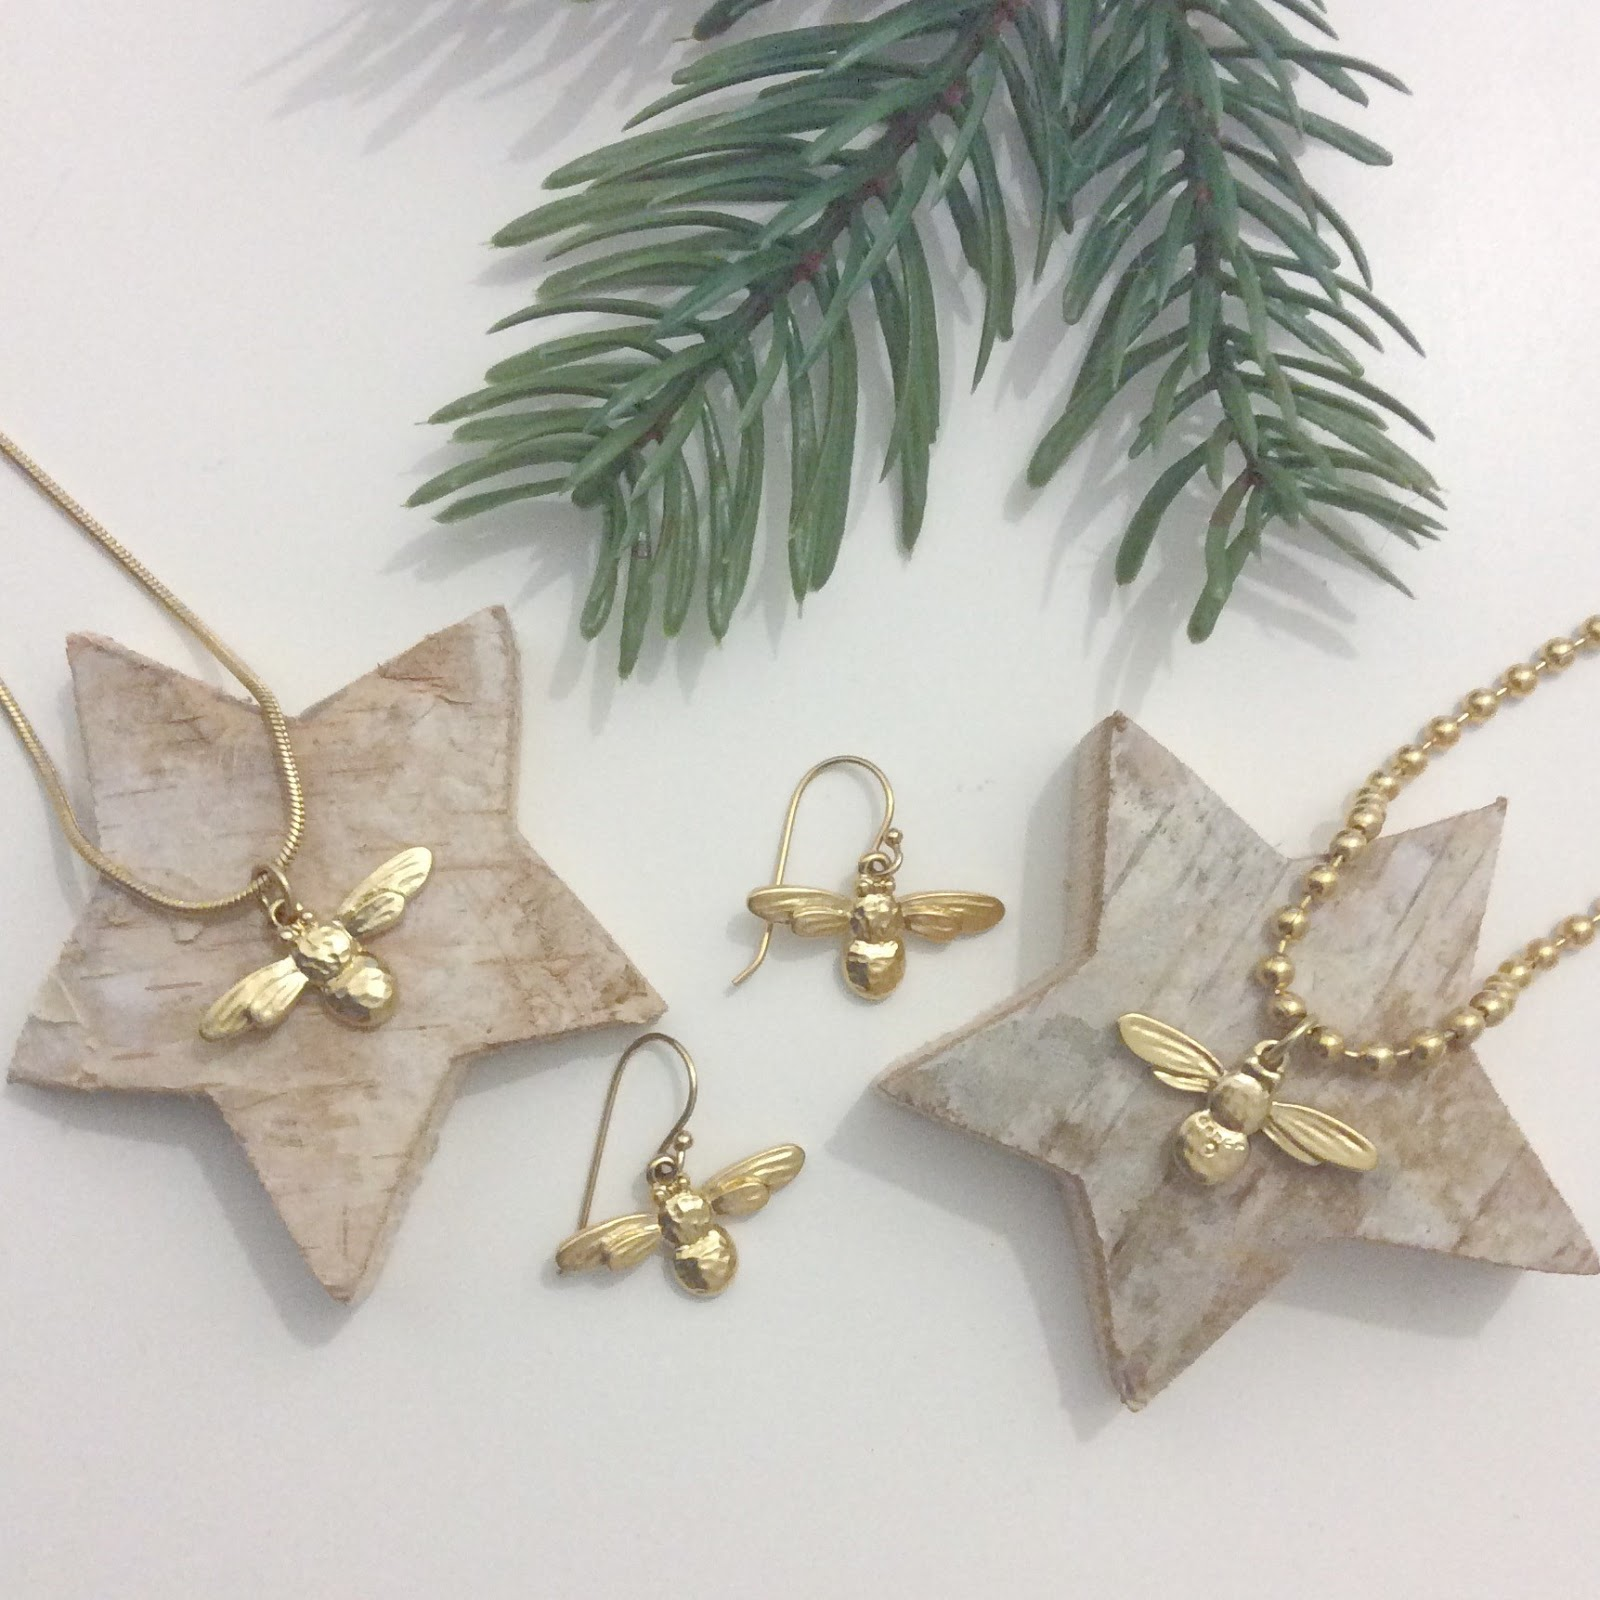 Christmas gift guide. Black friday discount, Danon  bee jewellery at Lizzy O